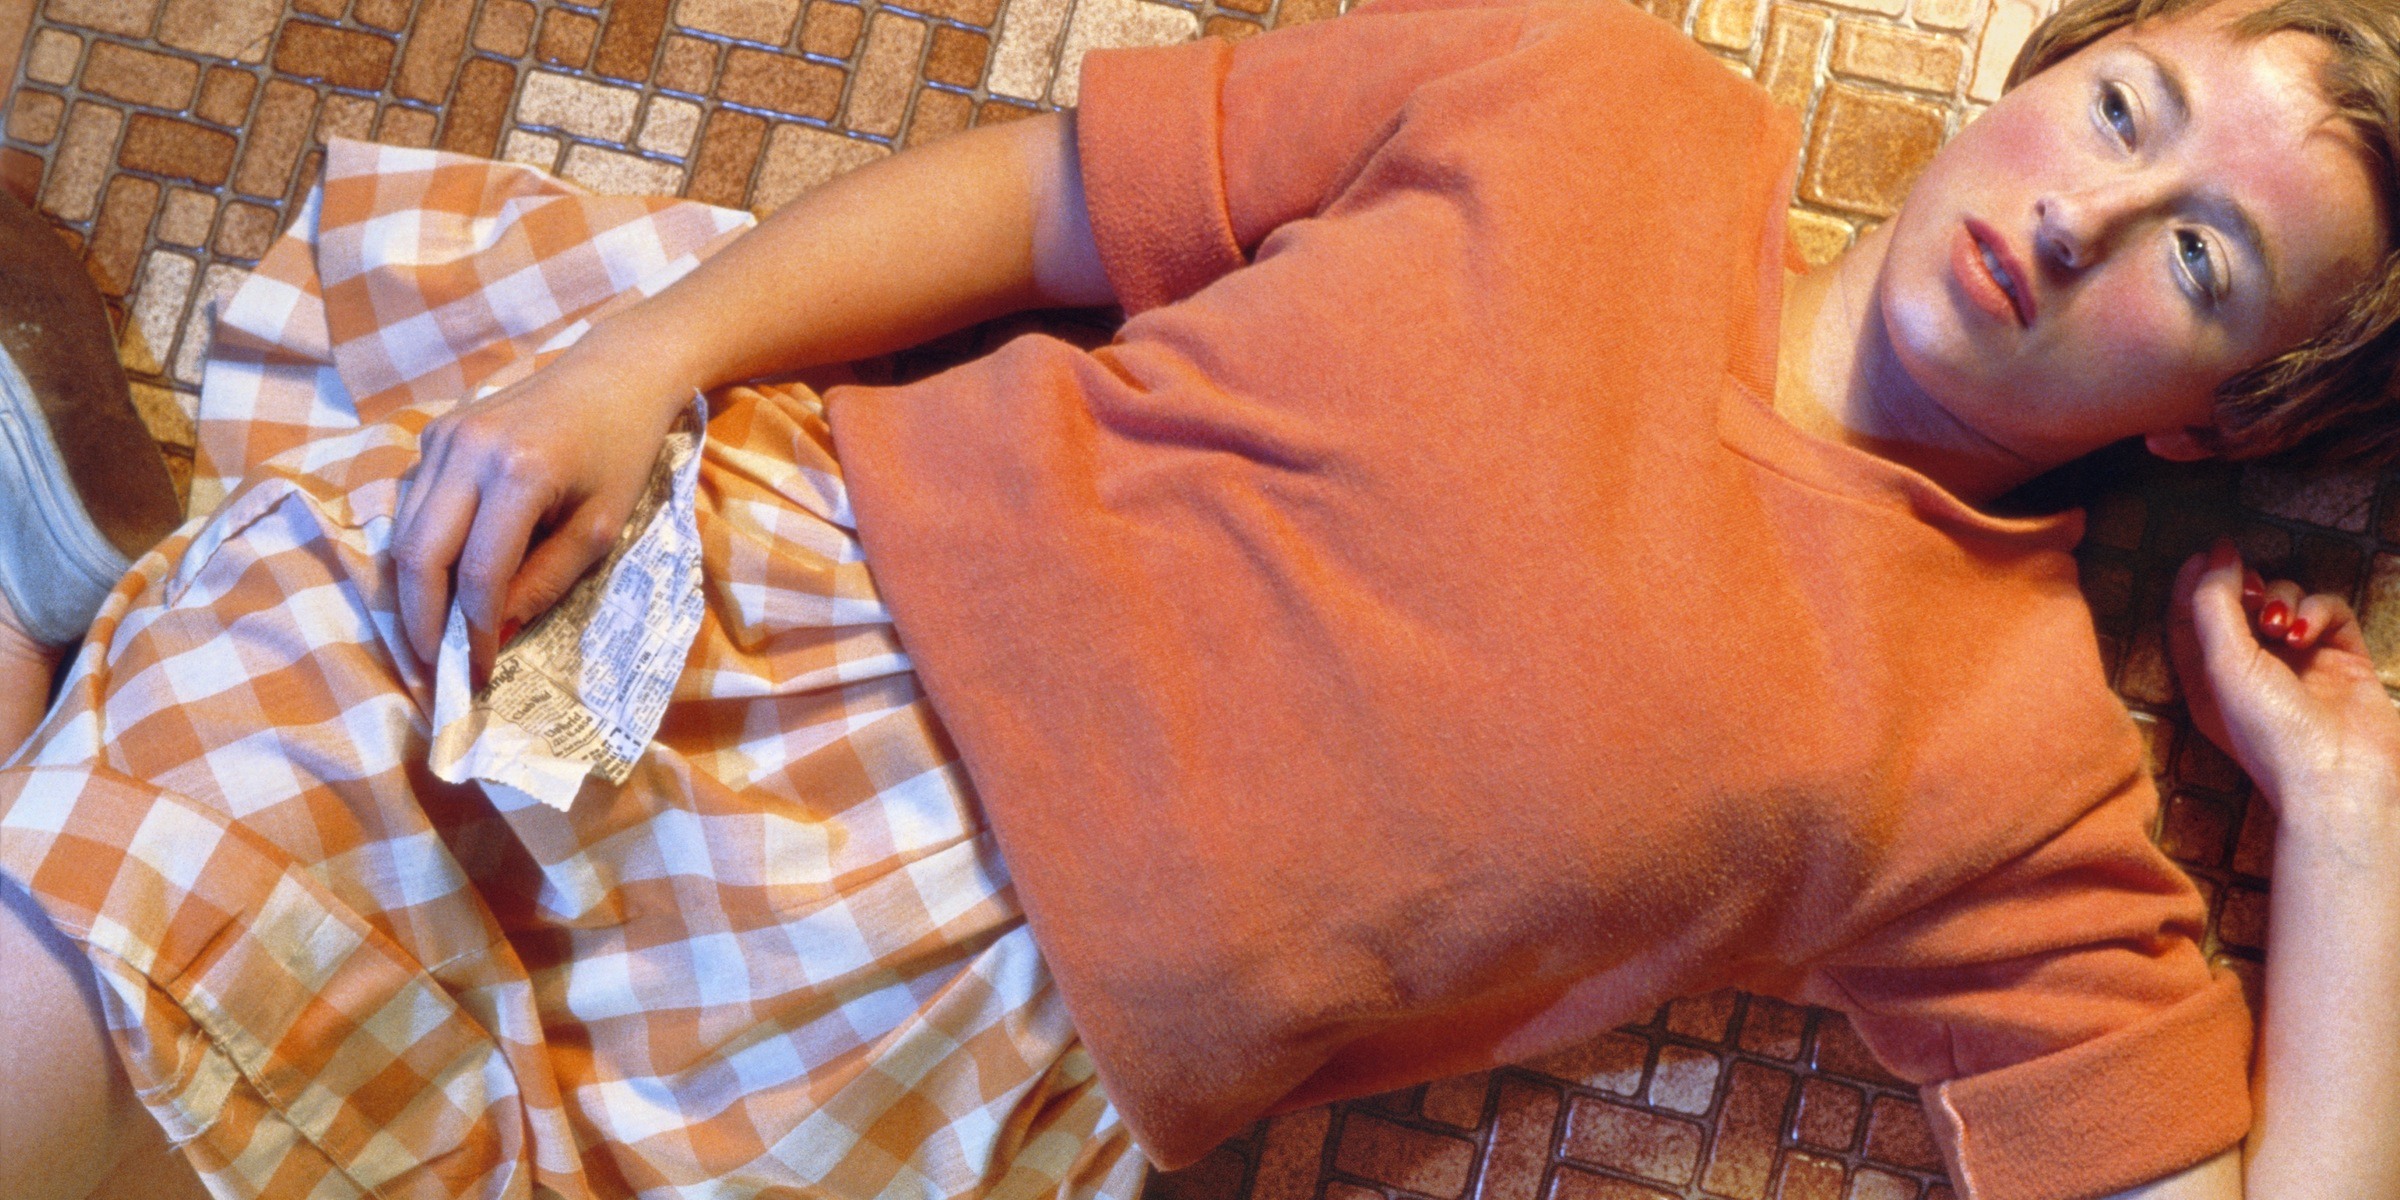 8.<br />Fotó: Cindy Sherman: Untitled #96 (1981)	<br />$2,882,500	<br />May 8, 2012	<br />Christie's New York